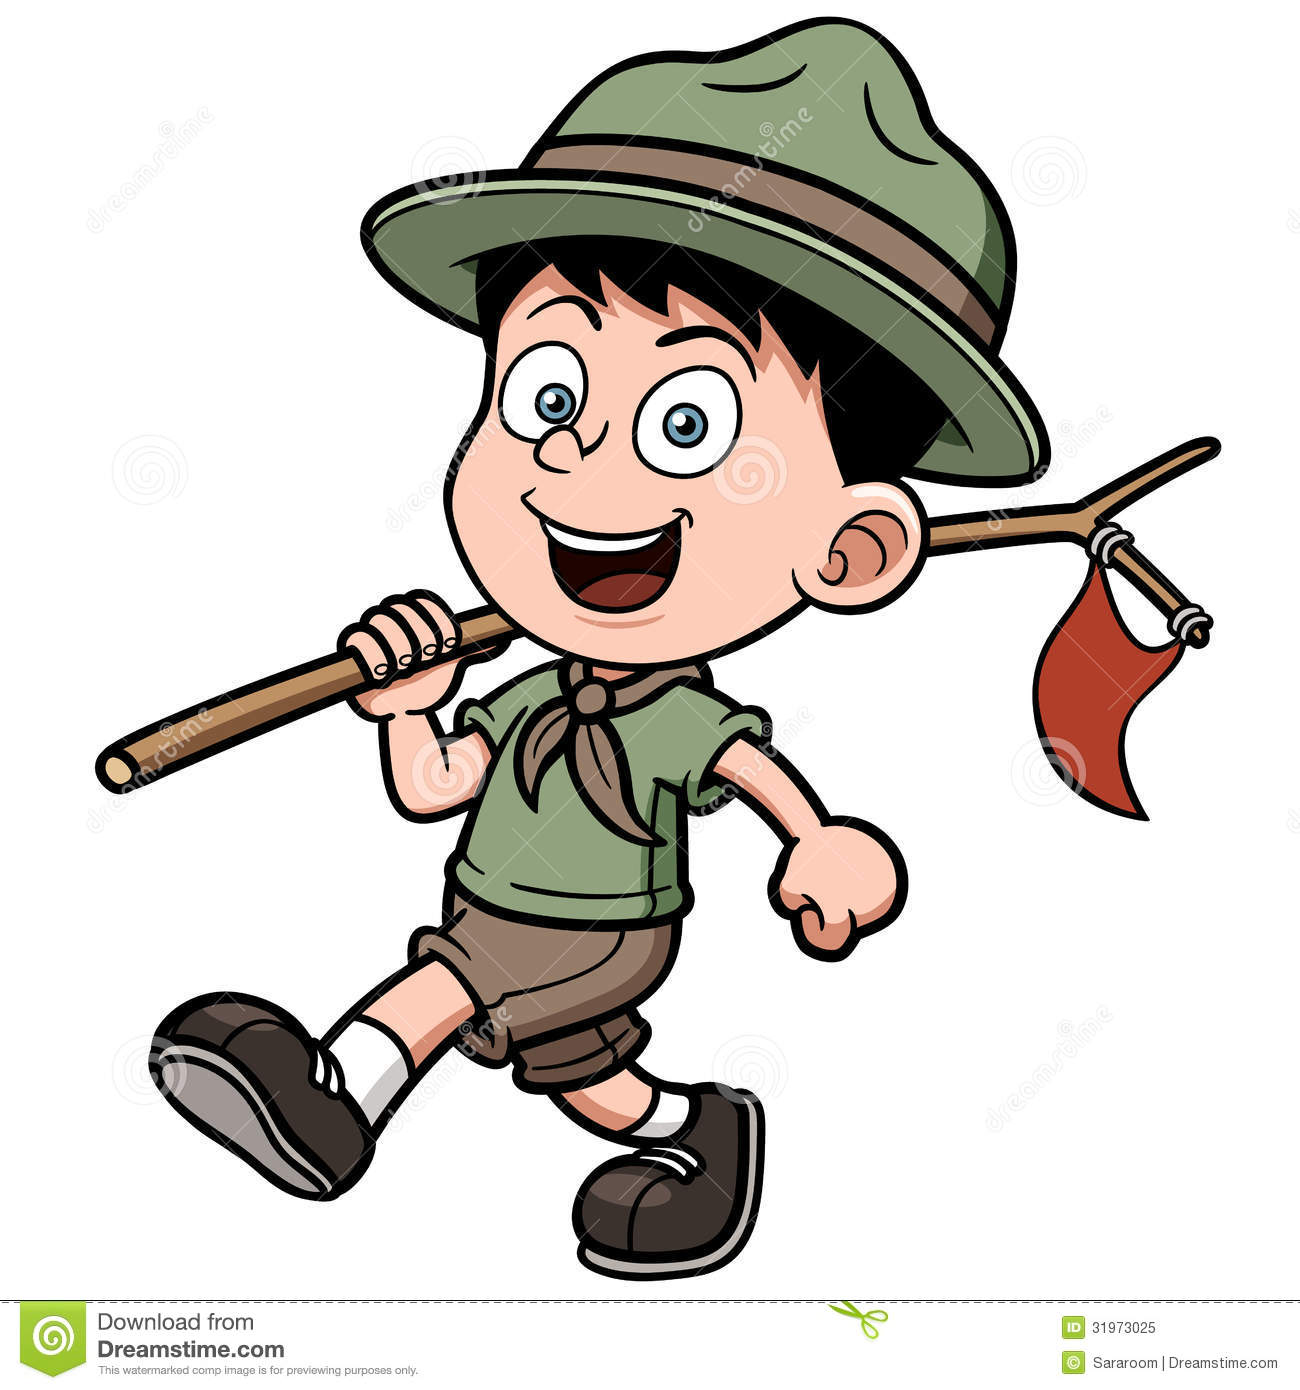 hight resolution of boy scout stock illustrations 1 870 boy scout stock illustrations vectors clipart dreamstime